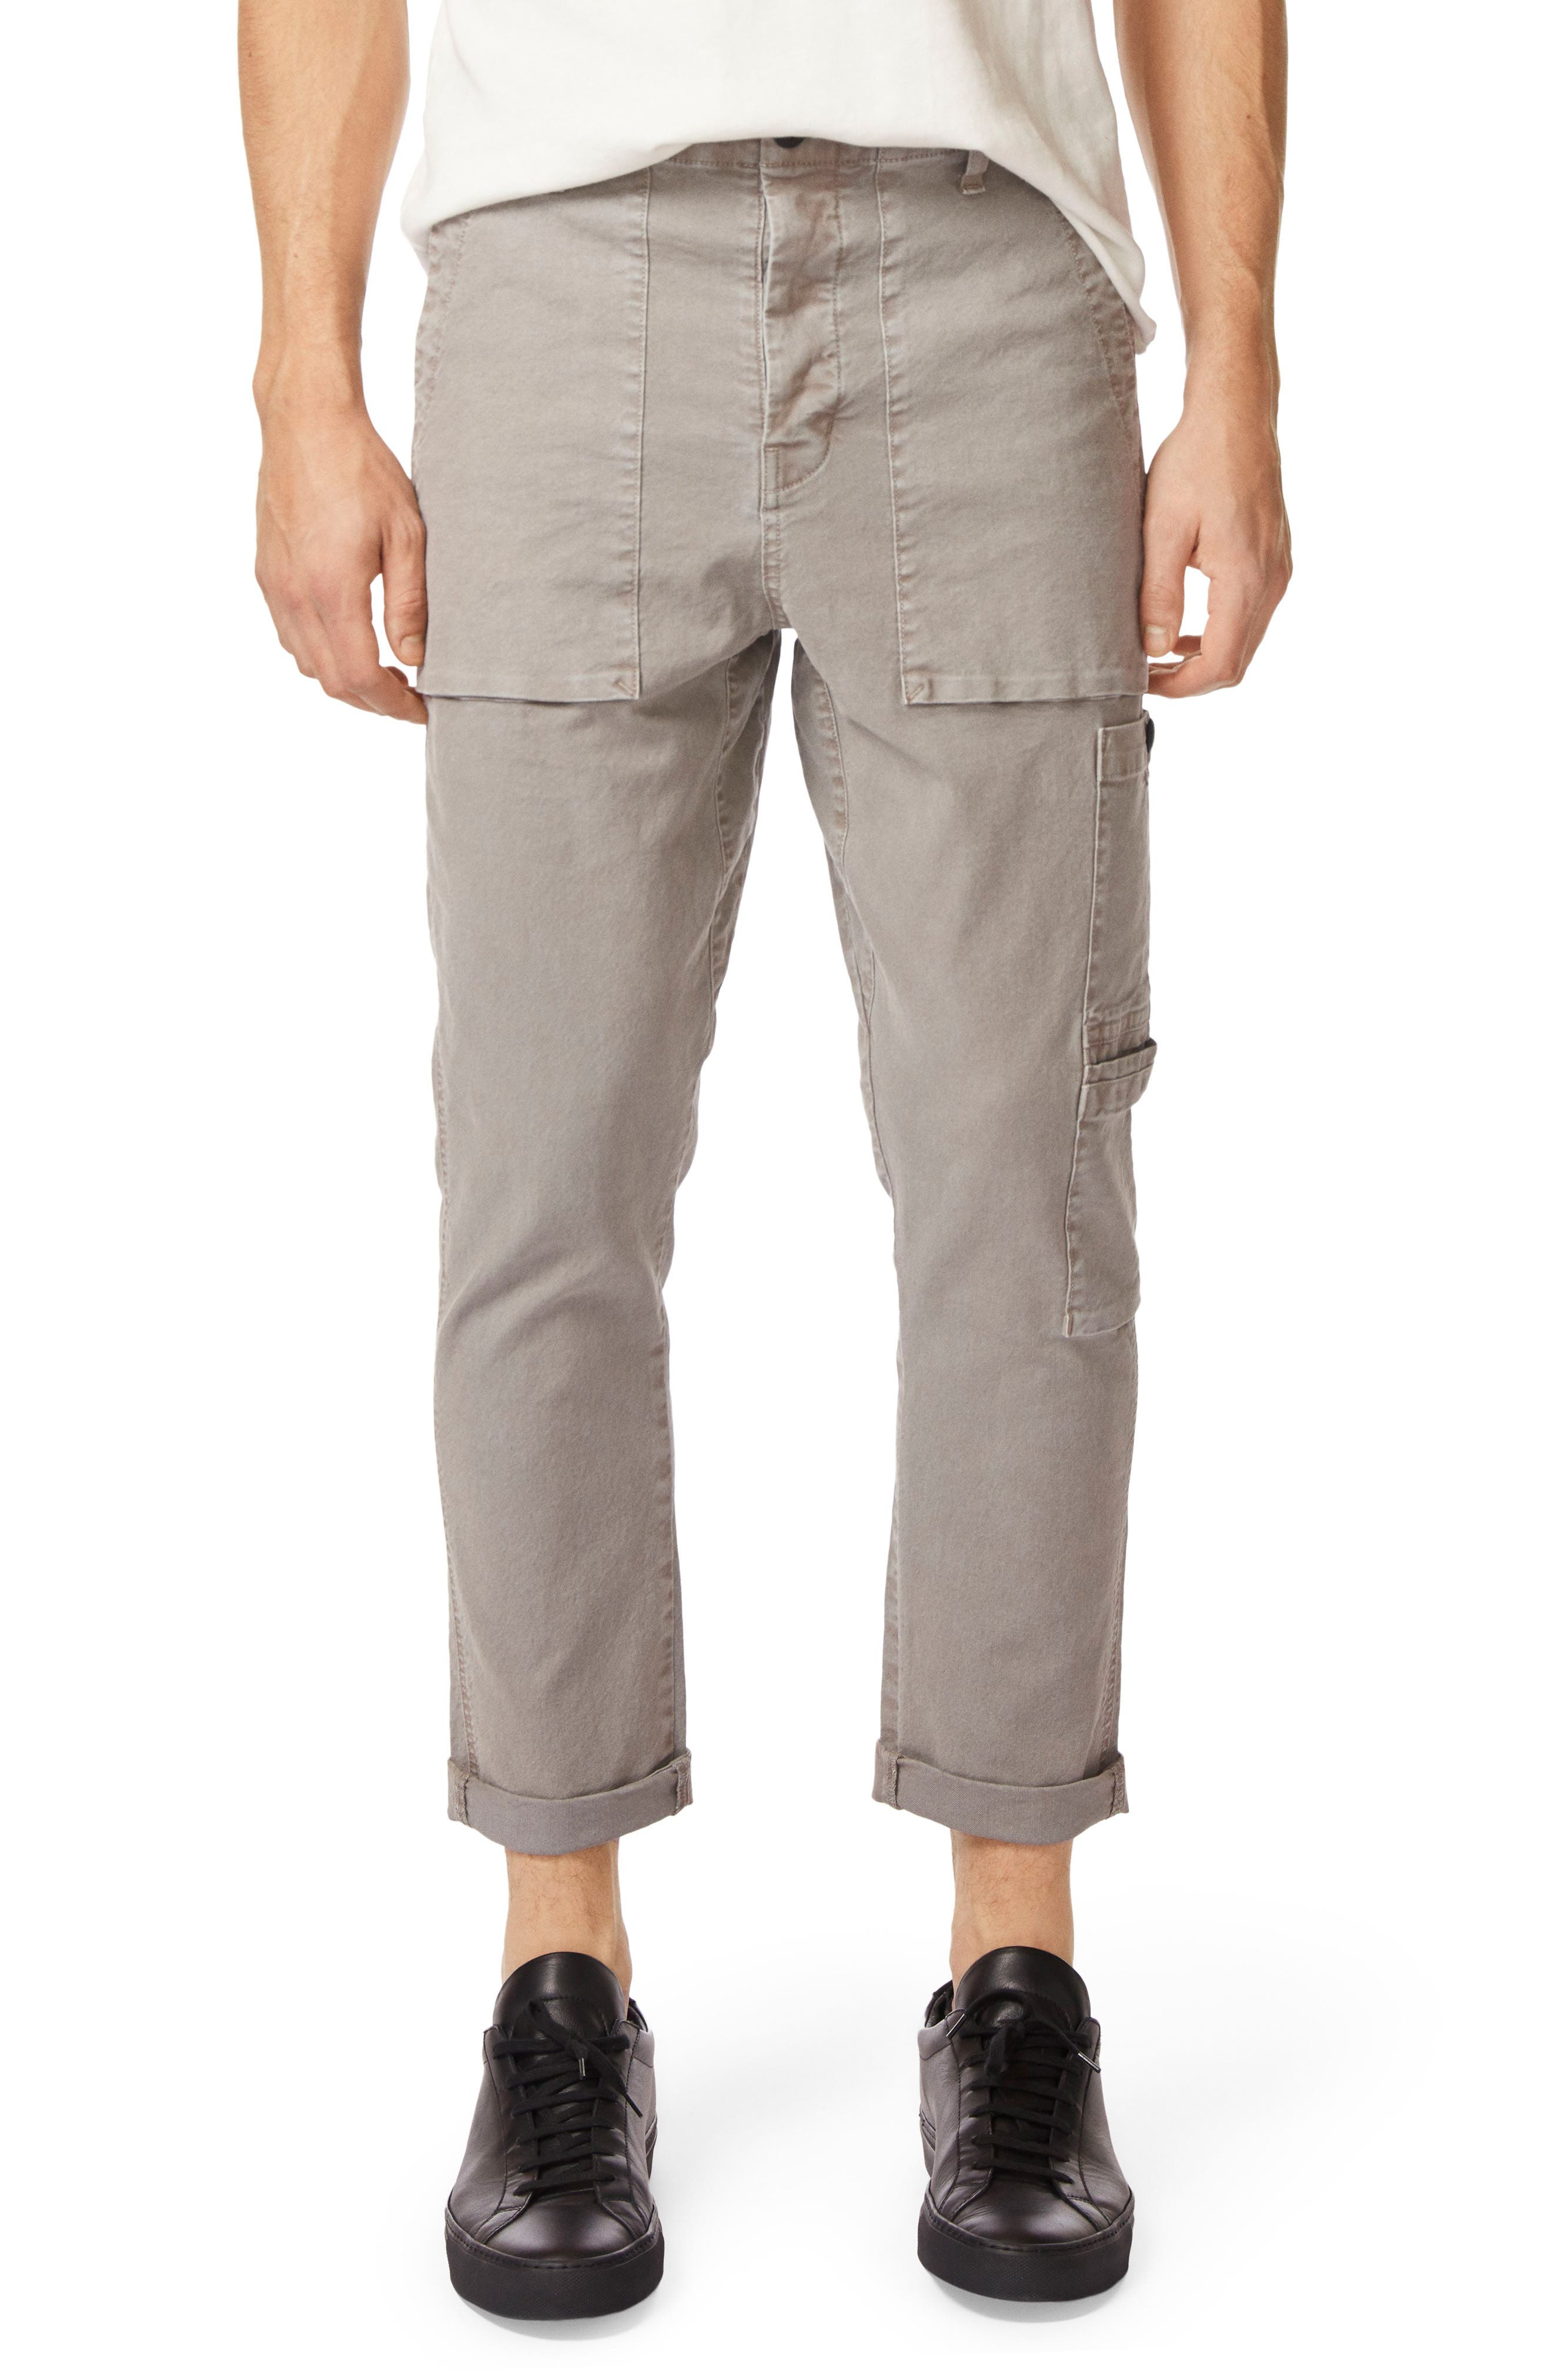 Koeficient Straight Fit Pant,                             Main thumbnail 1, color,                             Dull Drawi